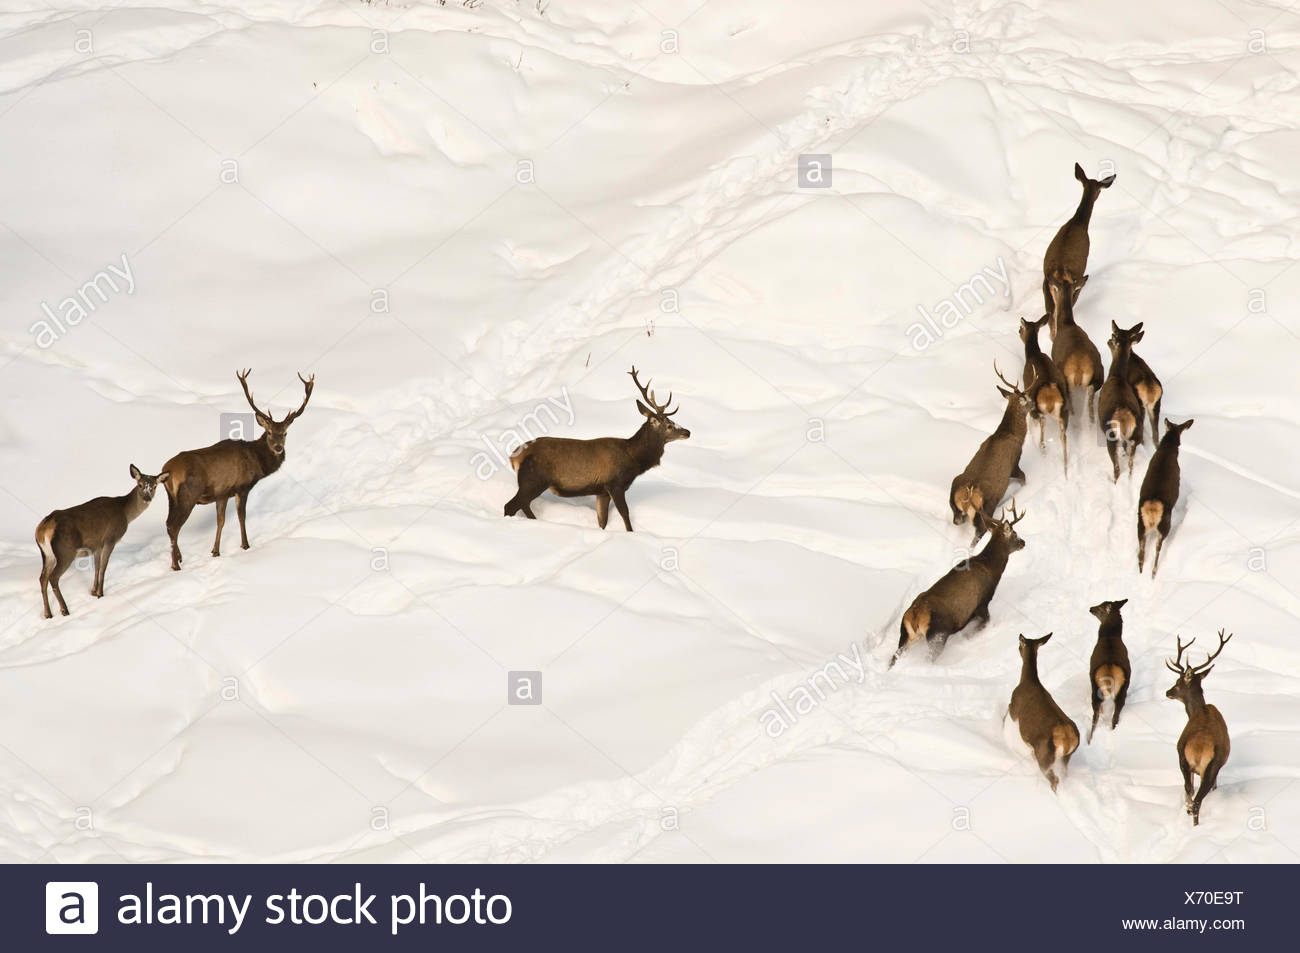 Red deer (Cervus elaphus) on a snow-covered cliff, High Alpine Nature Park of the Zillertal Alps, Tyrol, Austria, Europe Stock Photo